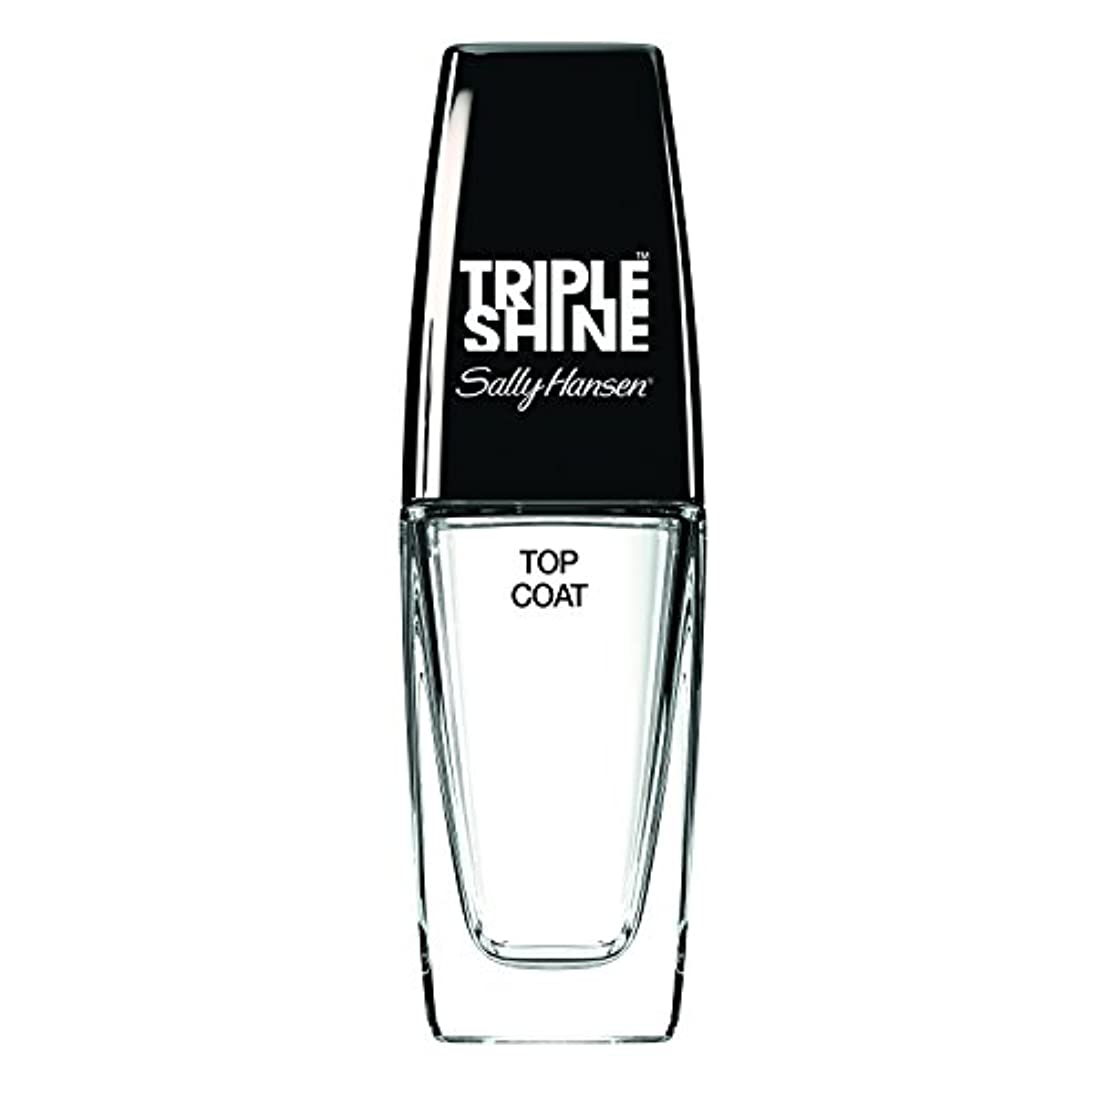 SALLY HANSEN Triple Shine Top Coat Triple Shine Top Coat (並行輸入品)